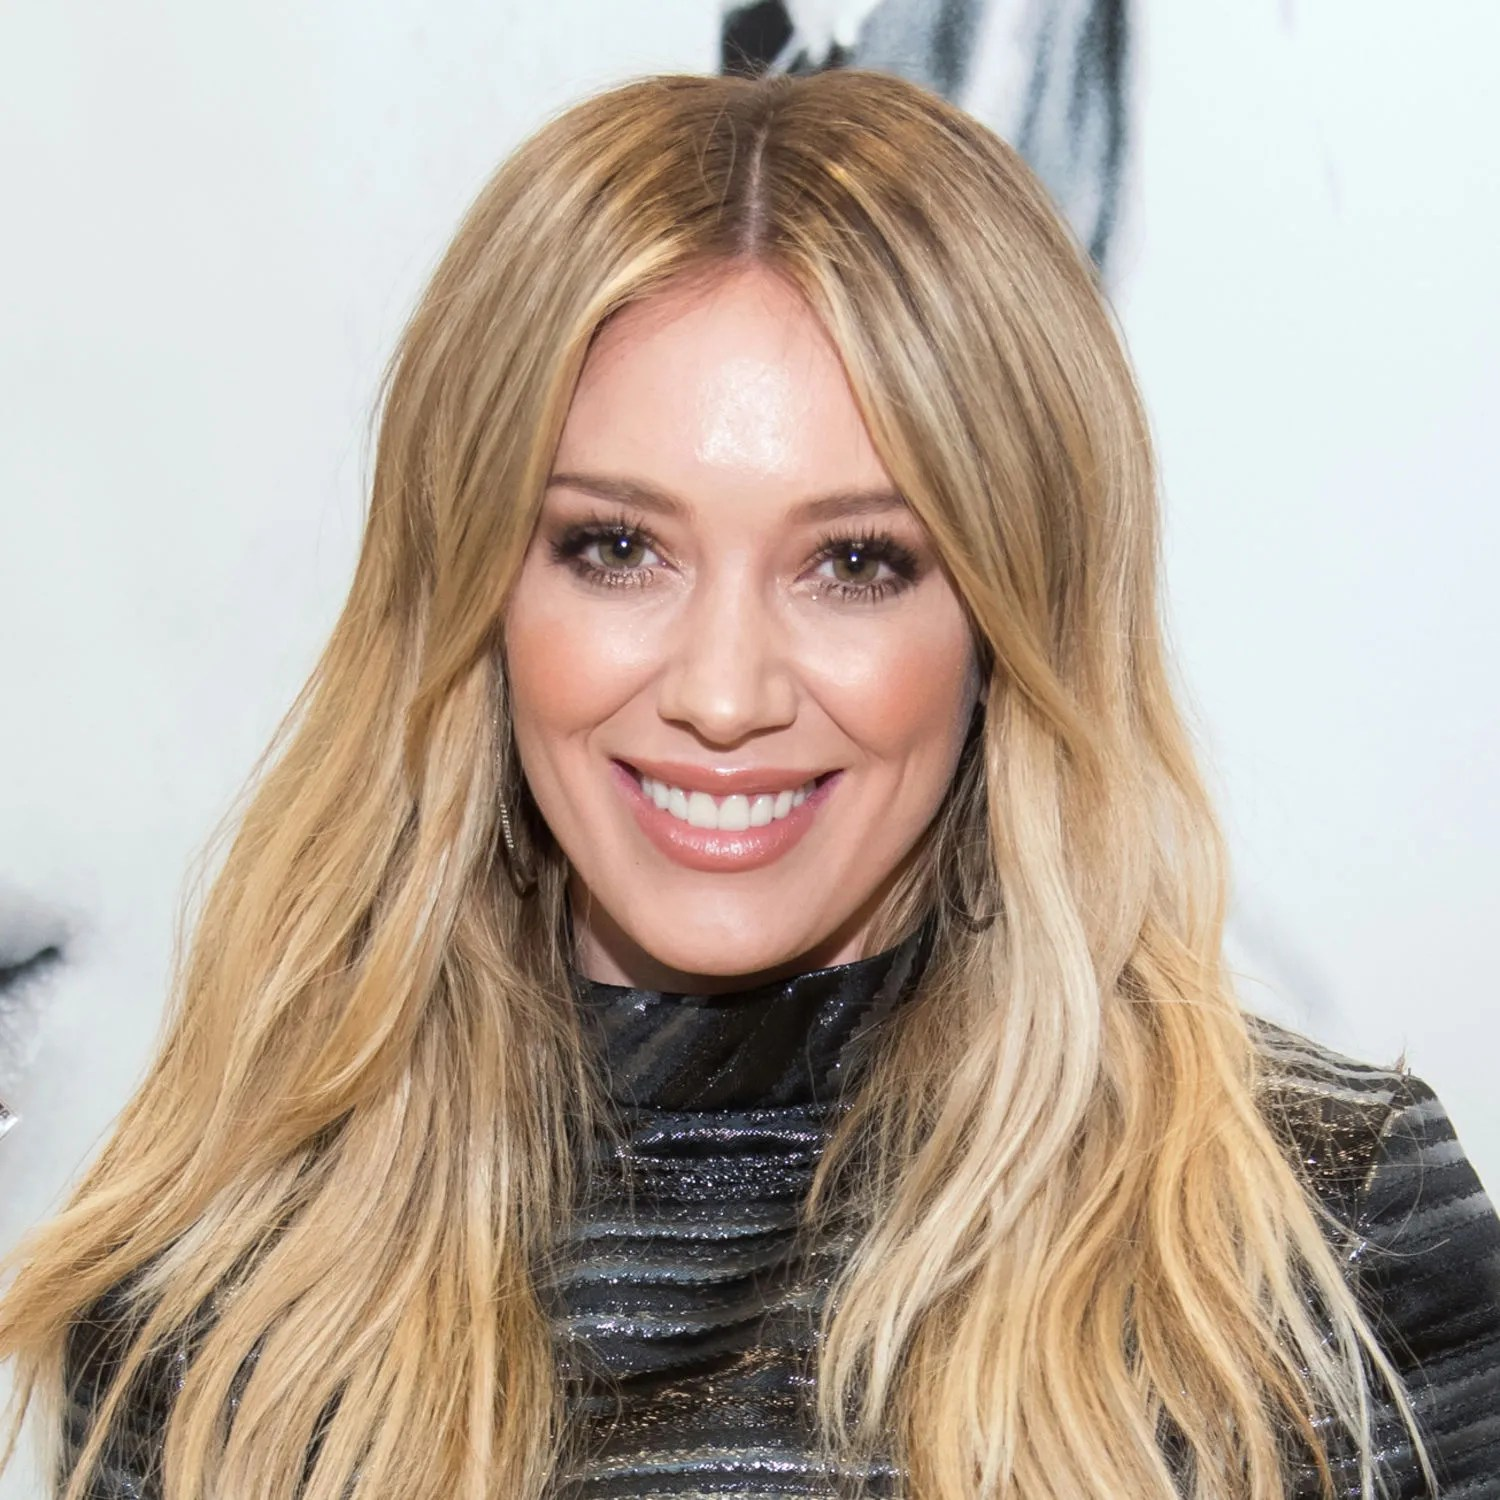 Hilary Duff Just Got The Most Flattering Kind Of Bangs Glamour